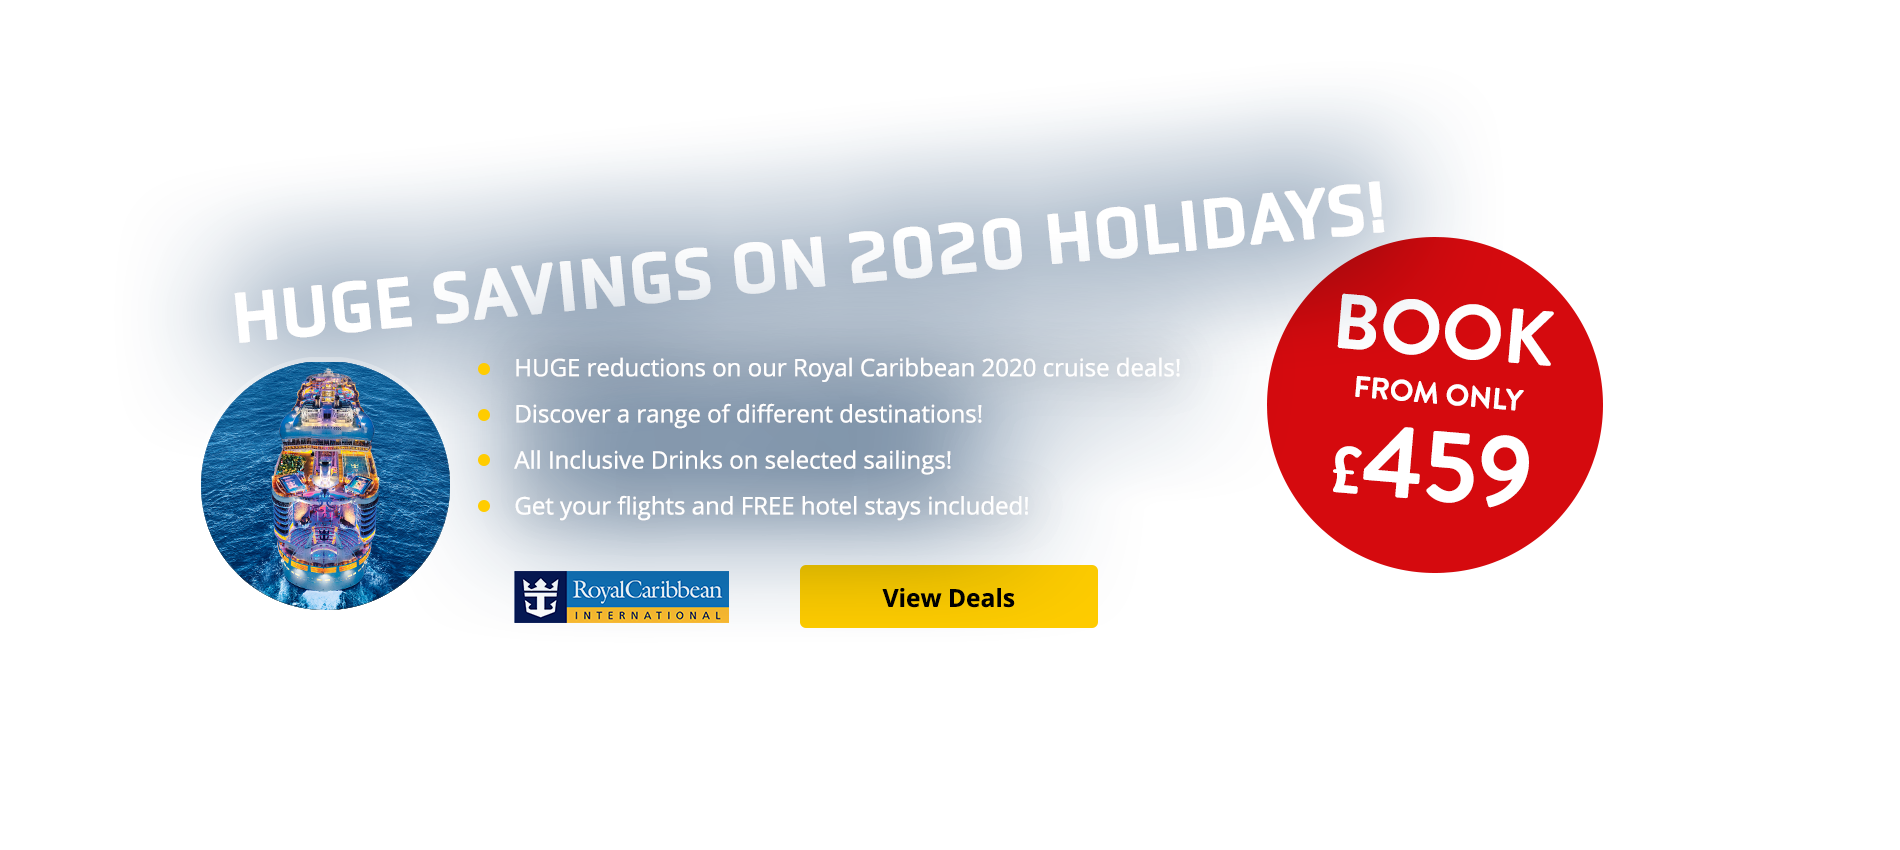 HUGE reductions on our Royal Caribbean 2020 cruise deals! Discover a range of different destinations! All Inclusive Drinks on selected sailings! Get your flights and FREE hotel stays included!